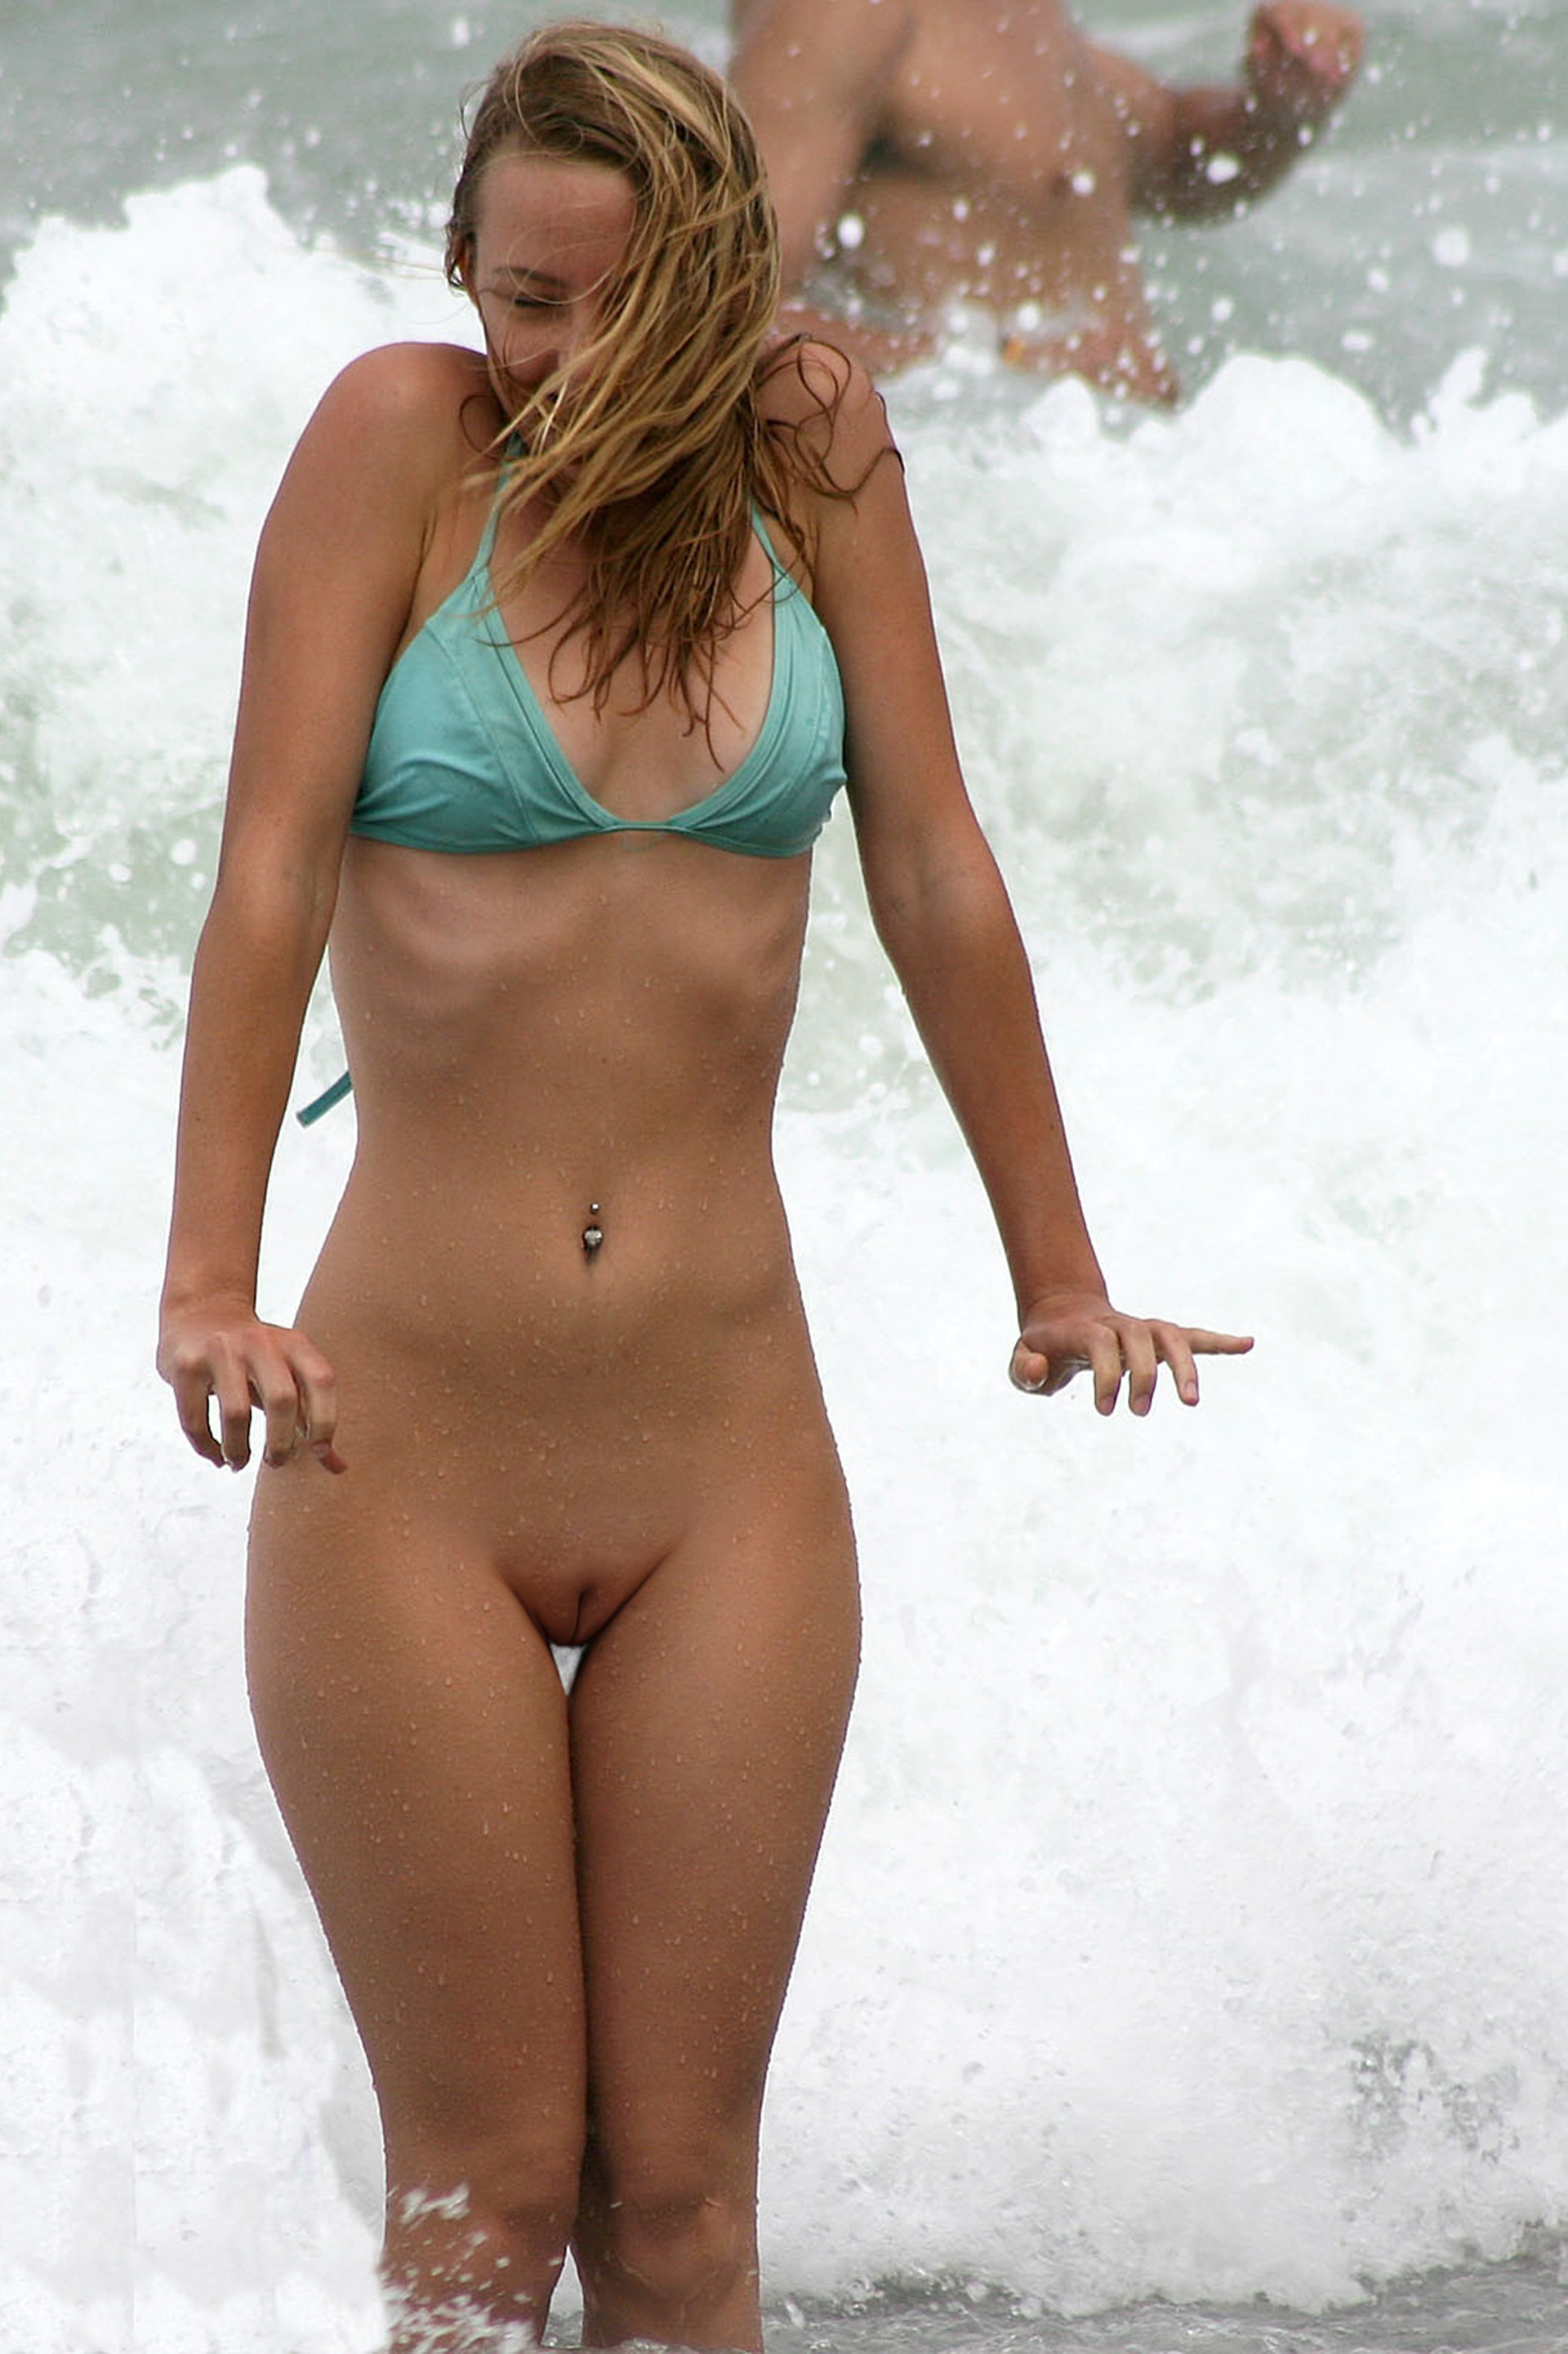 blonde young sexy celebrities porn tube movies and pictures sexy naked irish babes pics